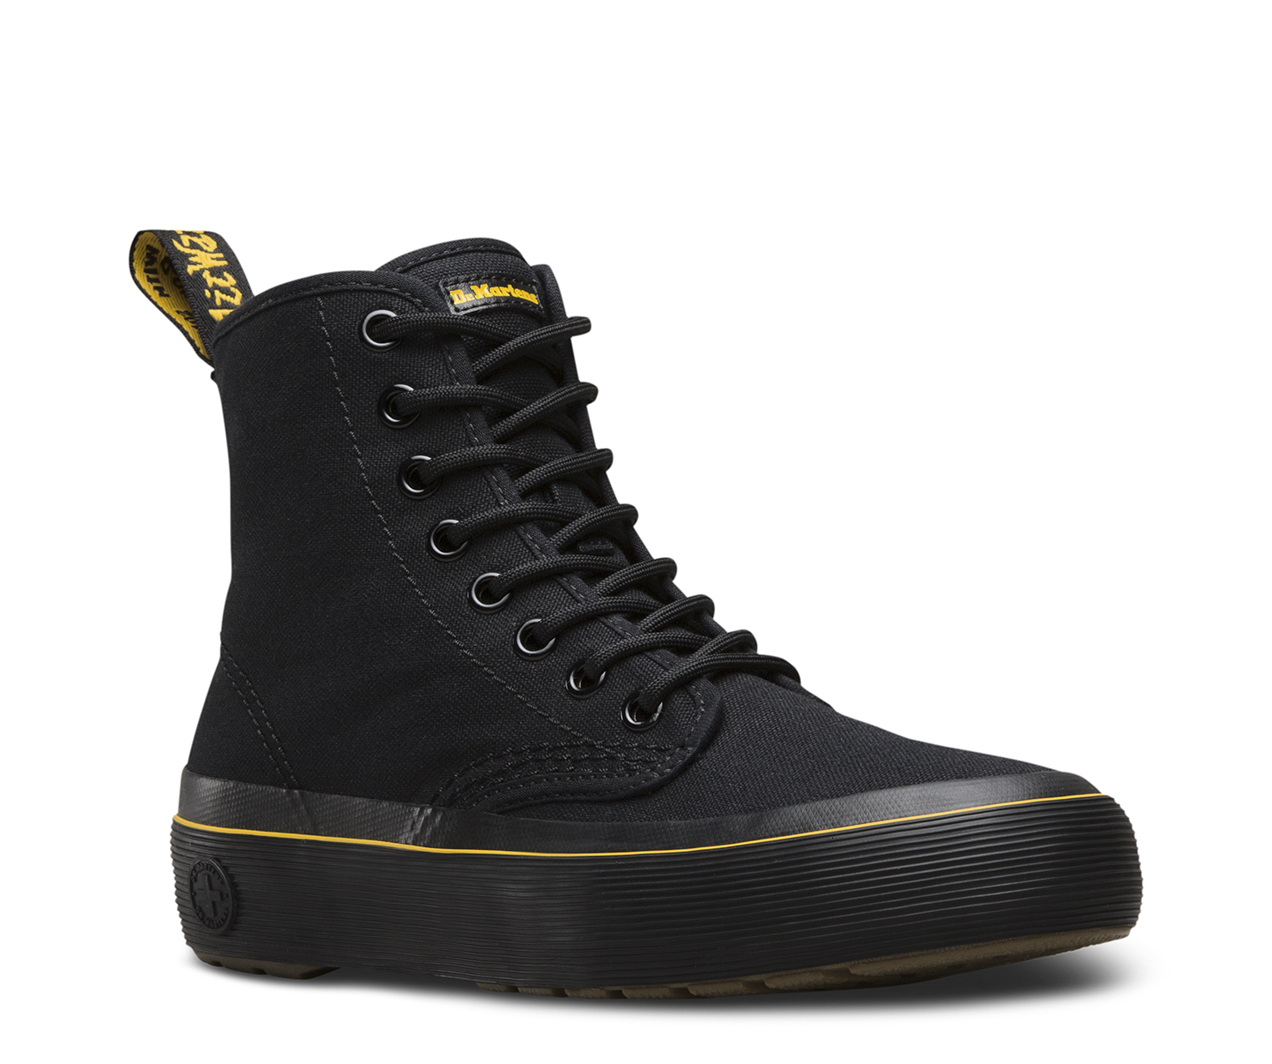 Dr Martens Monet 8 Eye Boot (Women's) sS8nn